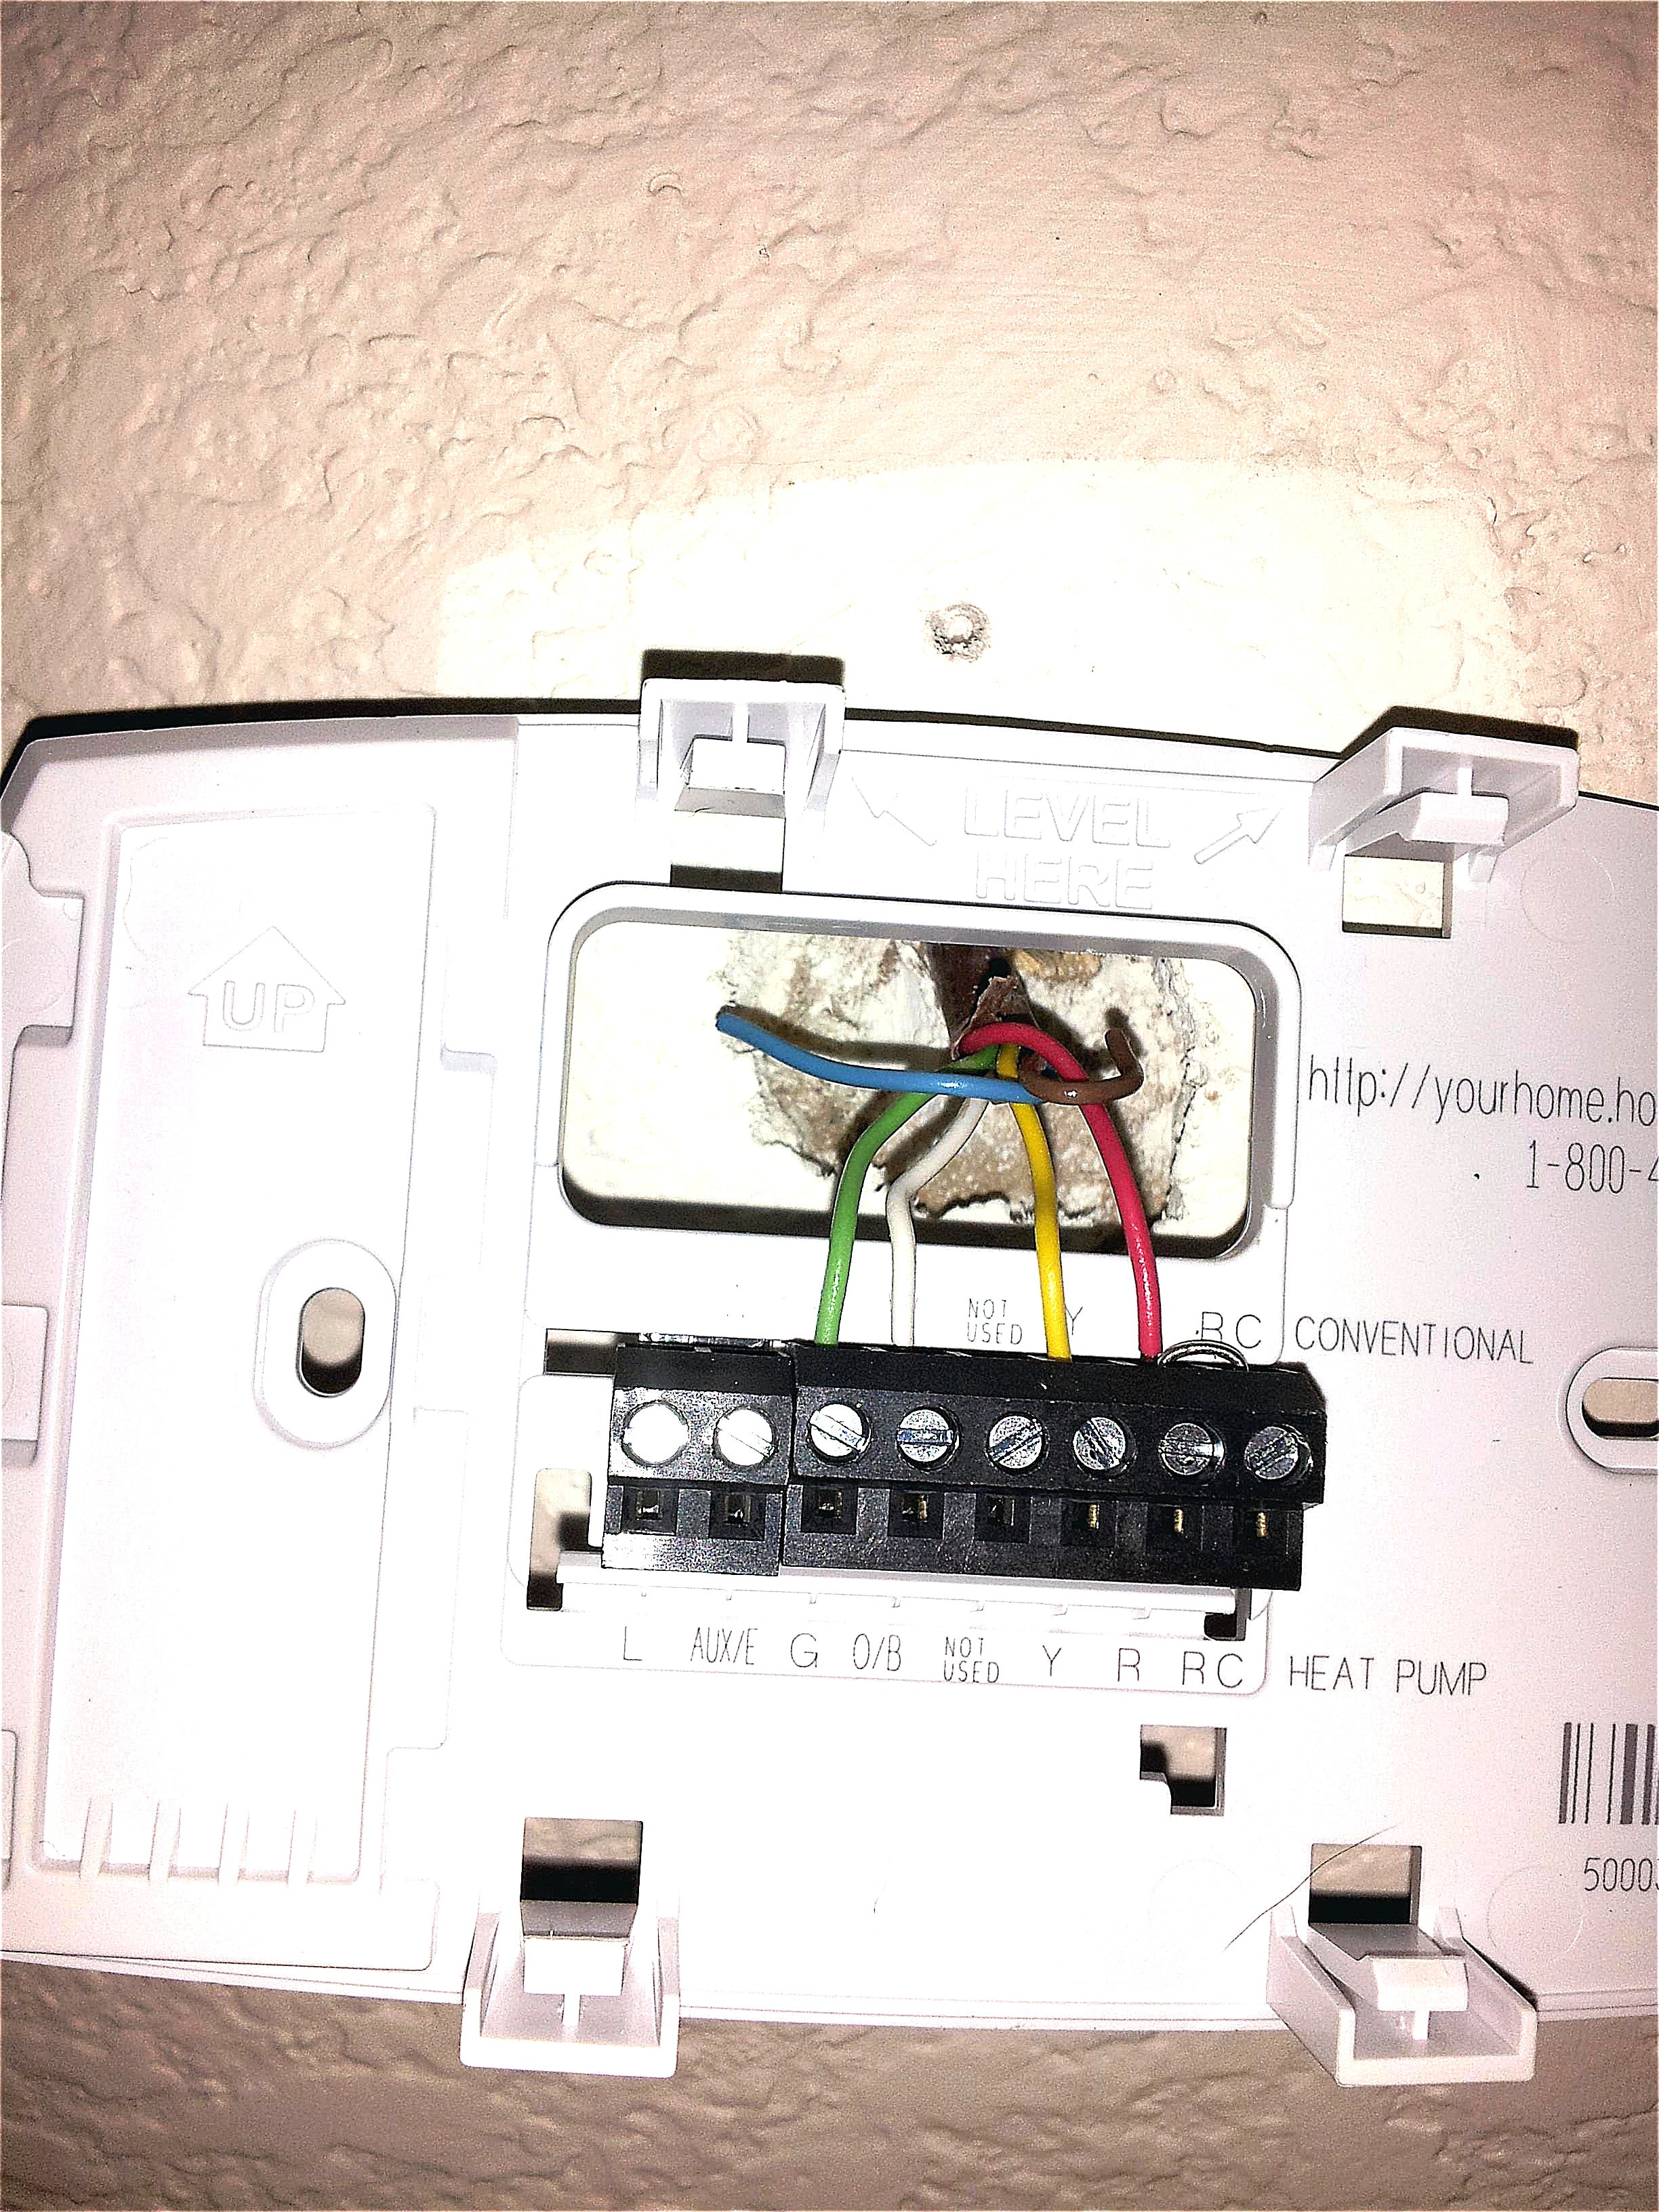 Honeywell Thermostat Rth6350D Wiring Diagram - Wiring Diagram Data Oreo - Wiring Diagram For Honeywell Thermostats